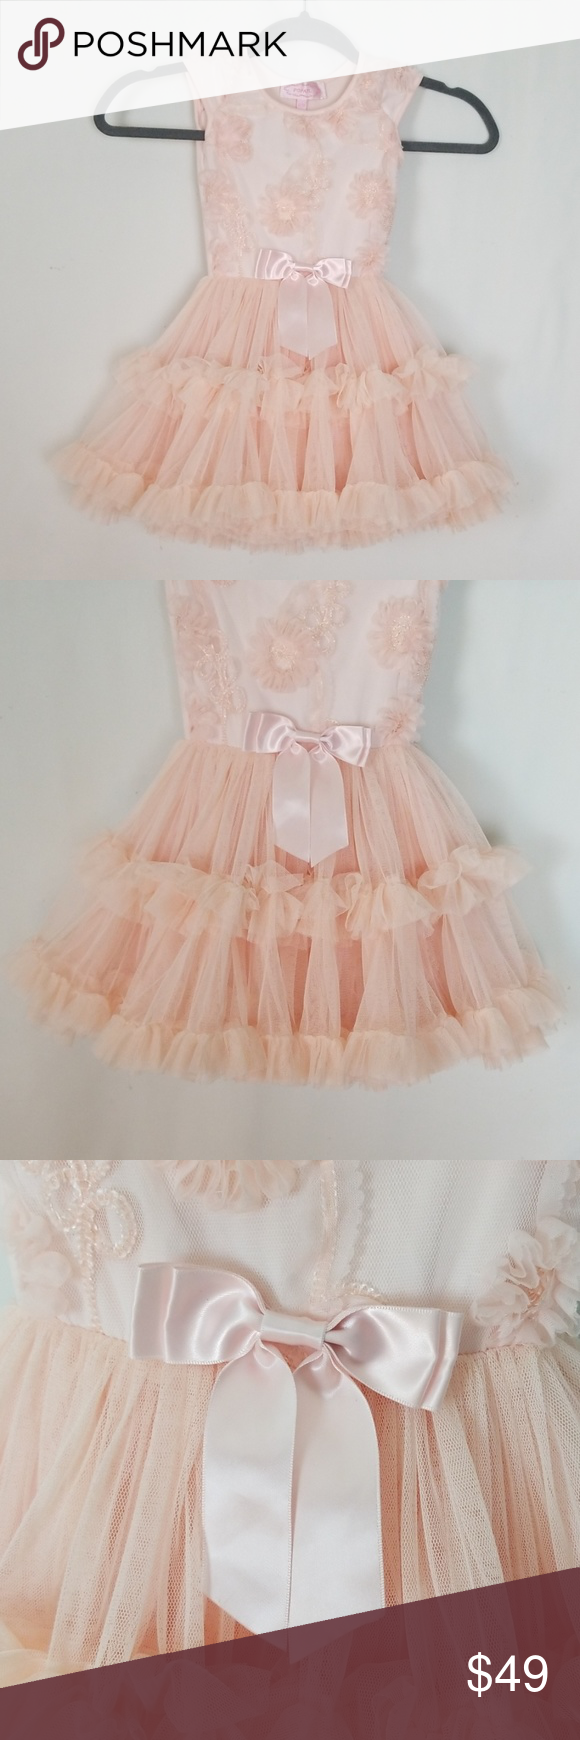 Popatu 3t 4t Ballerina Light Pink Dress This Dress Is Full And Fluffy With Three Layers Of Ruffles The Bod Light Pink Dress Ballerina Dress Pink Floral Dress [ 1740 x 580 Pixel ]